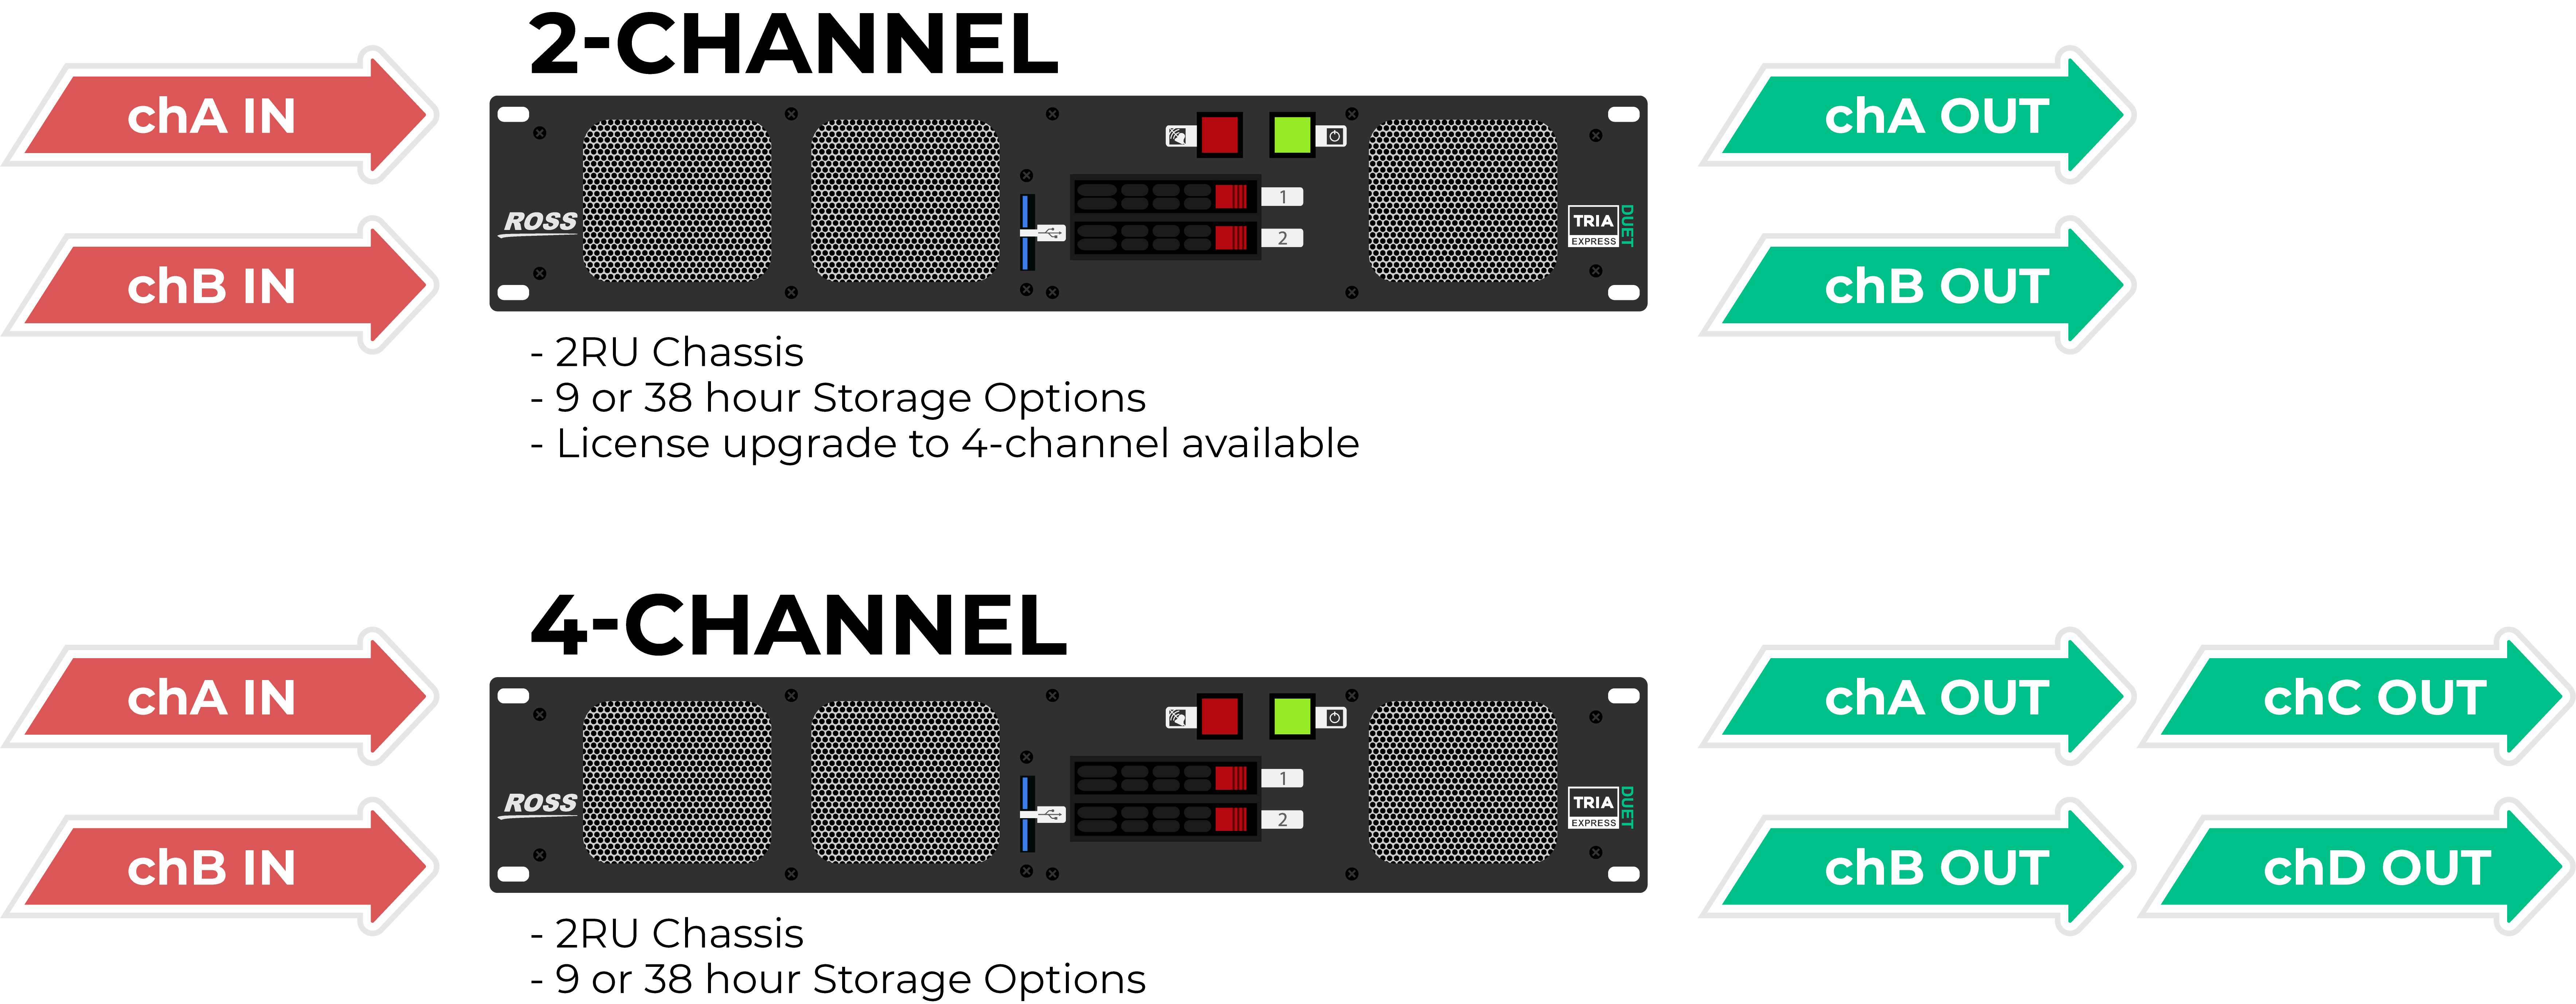 Diagram illustrating the differences between 2-channel and 4-channel options